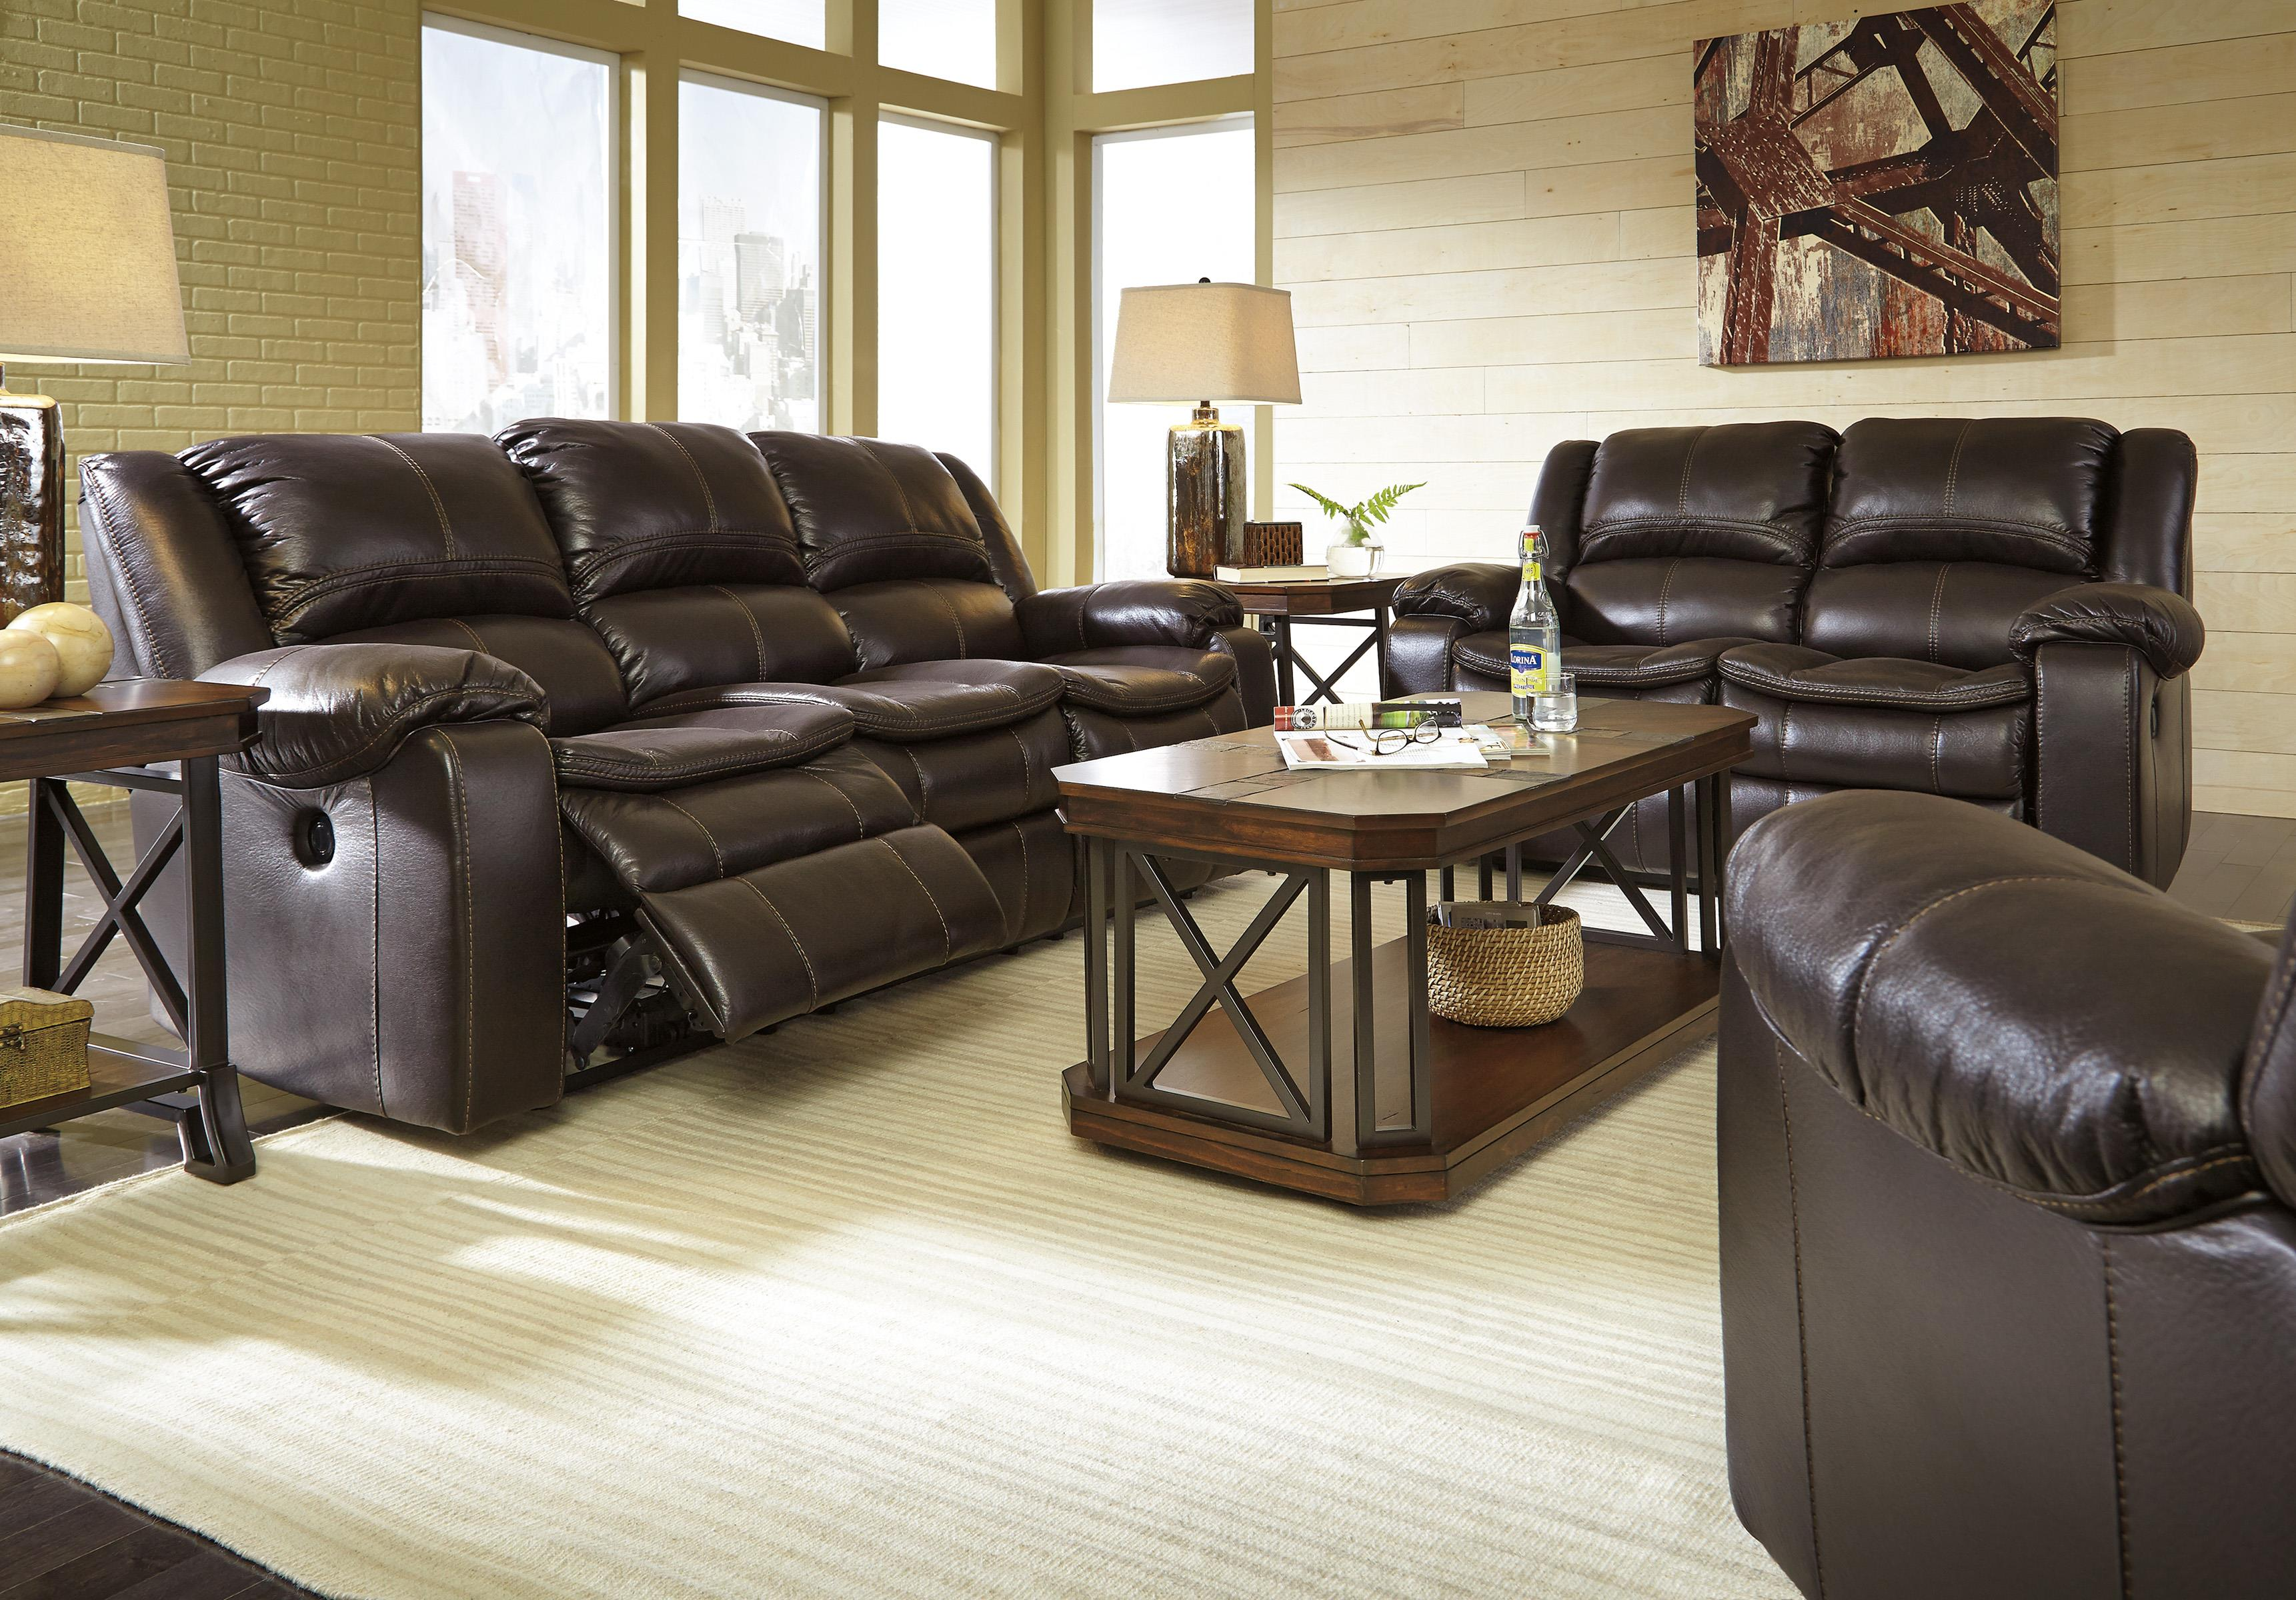 Signature Design by Ashley Long Knight Reclining Living Room Group - Item Number: 88905 Living Room Group 3